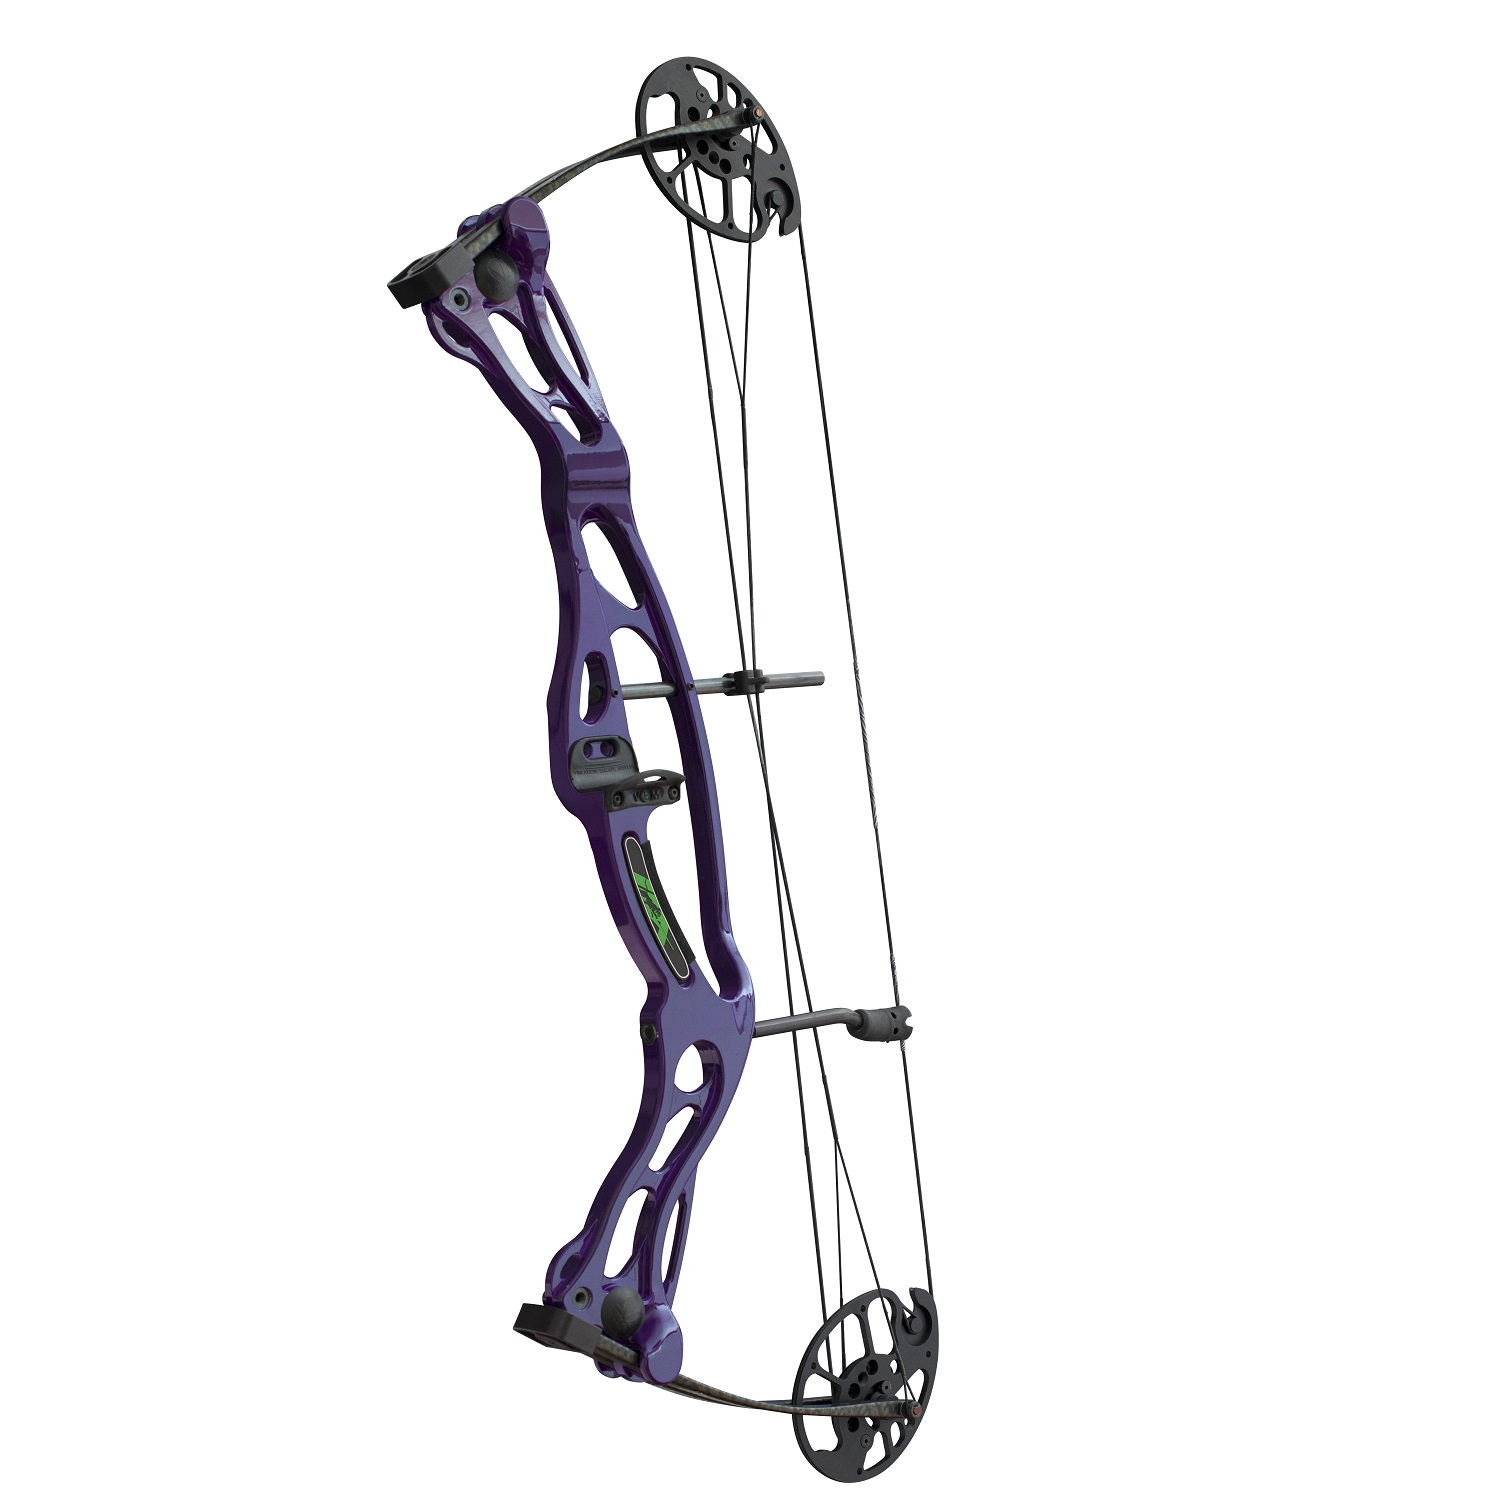 Martin Archery Krypton SE Purple 70# RH Compound Bow Pkg